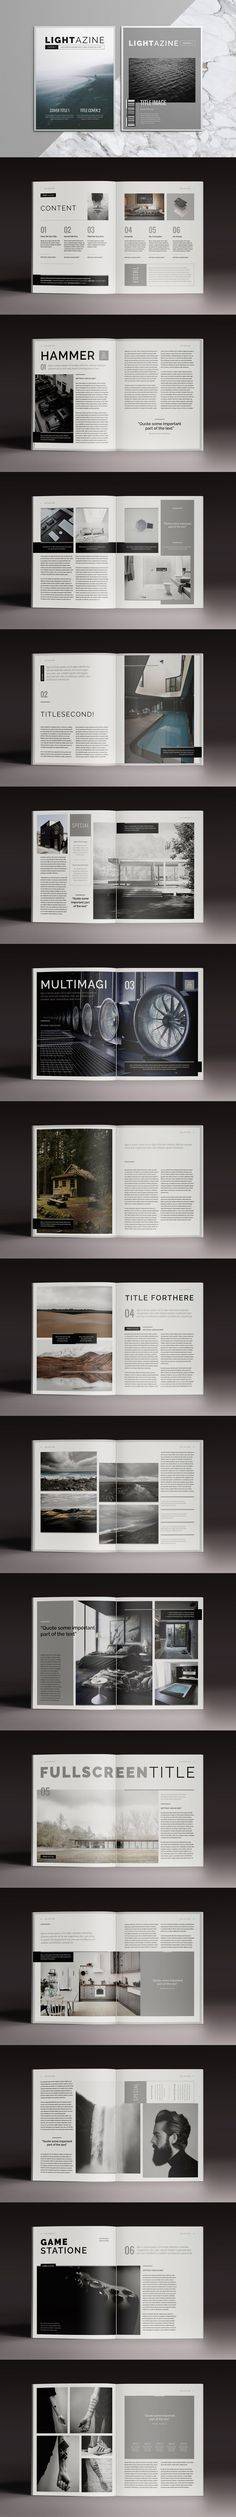 Lightazine - 32 Pages Magazine Template InDesign INDD